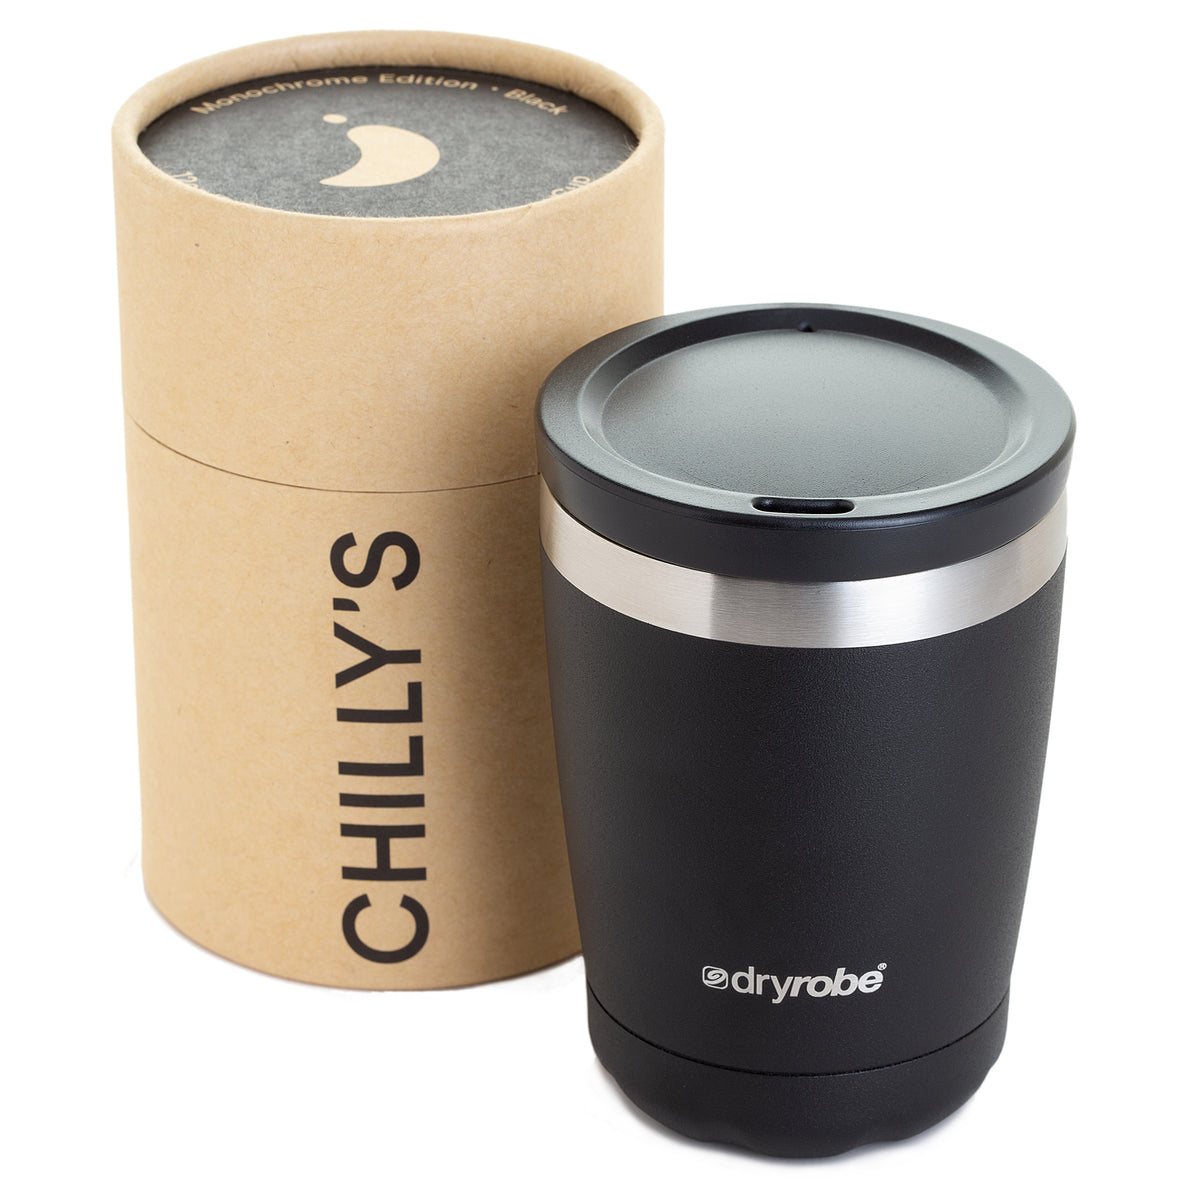 1| dryrobe x Chilly's Coffee Cup Studio Packaging